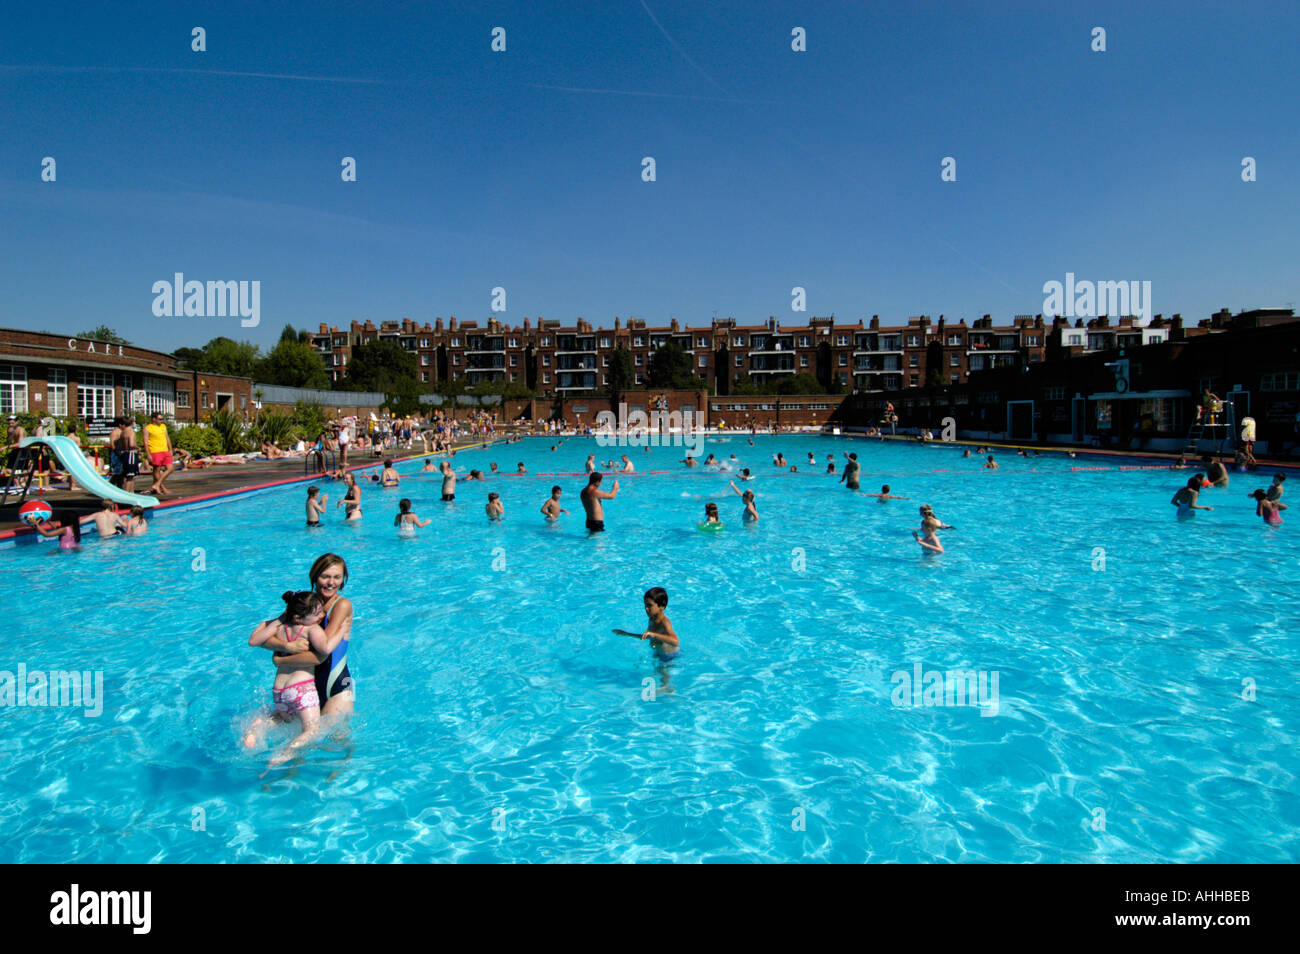 The lido outdoor swimming pool hampstead london england uk stock photo 2677738 alamy for Hampstead heath park swimming pool